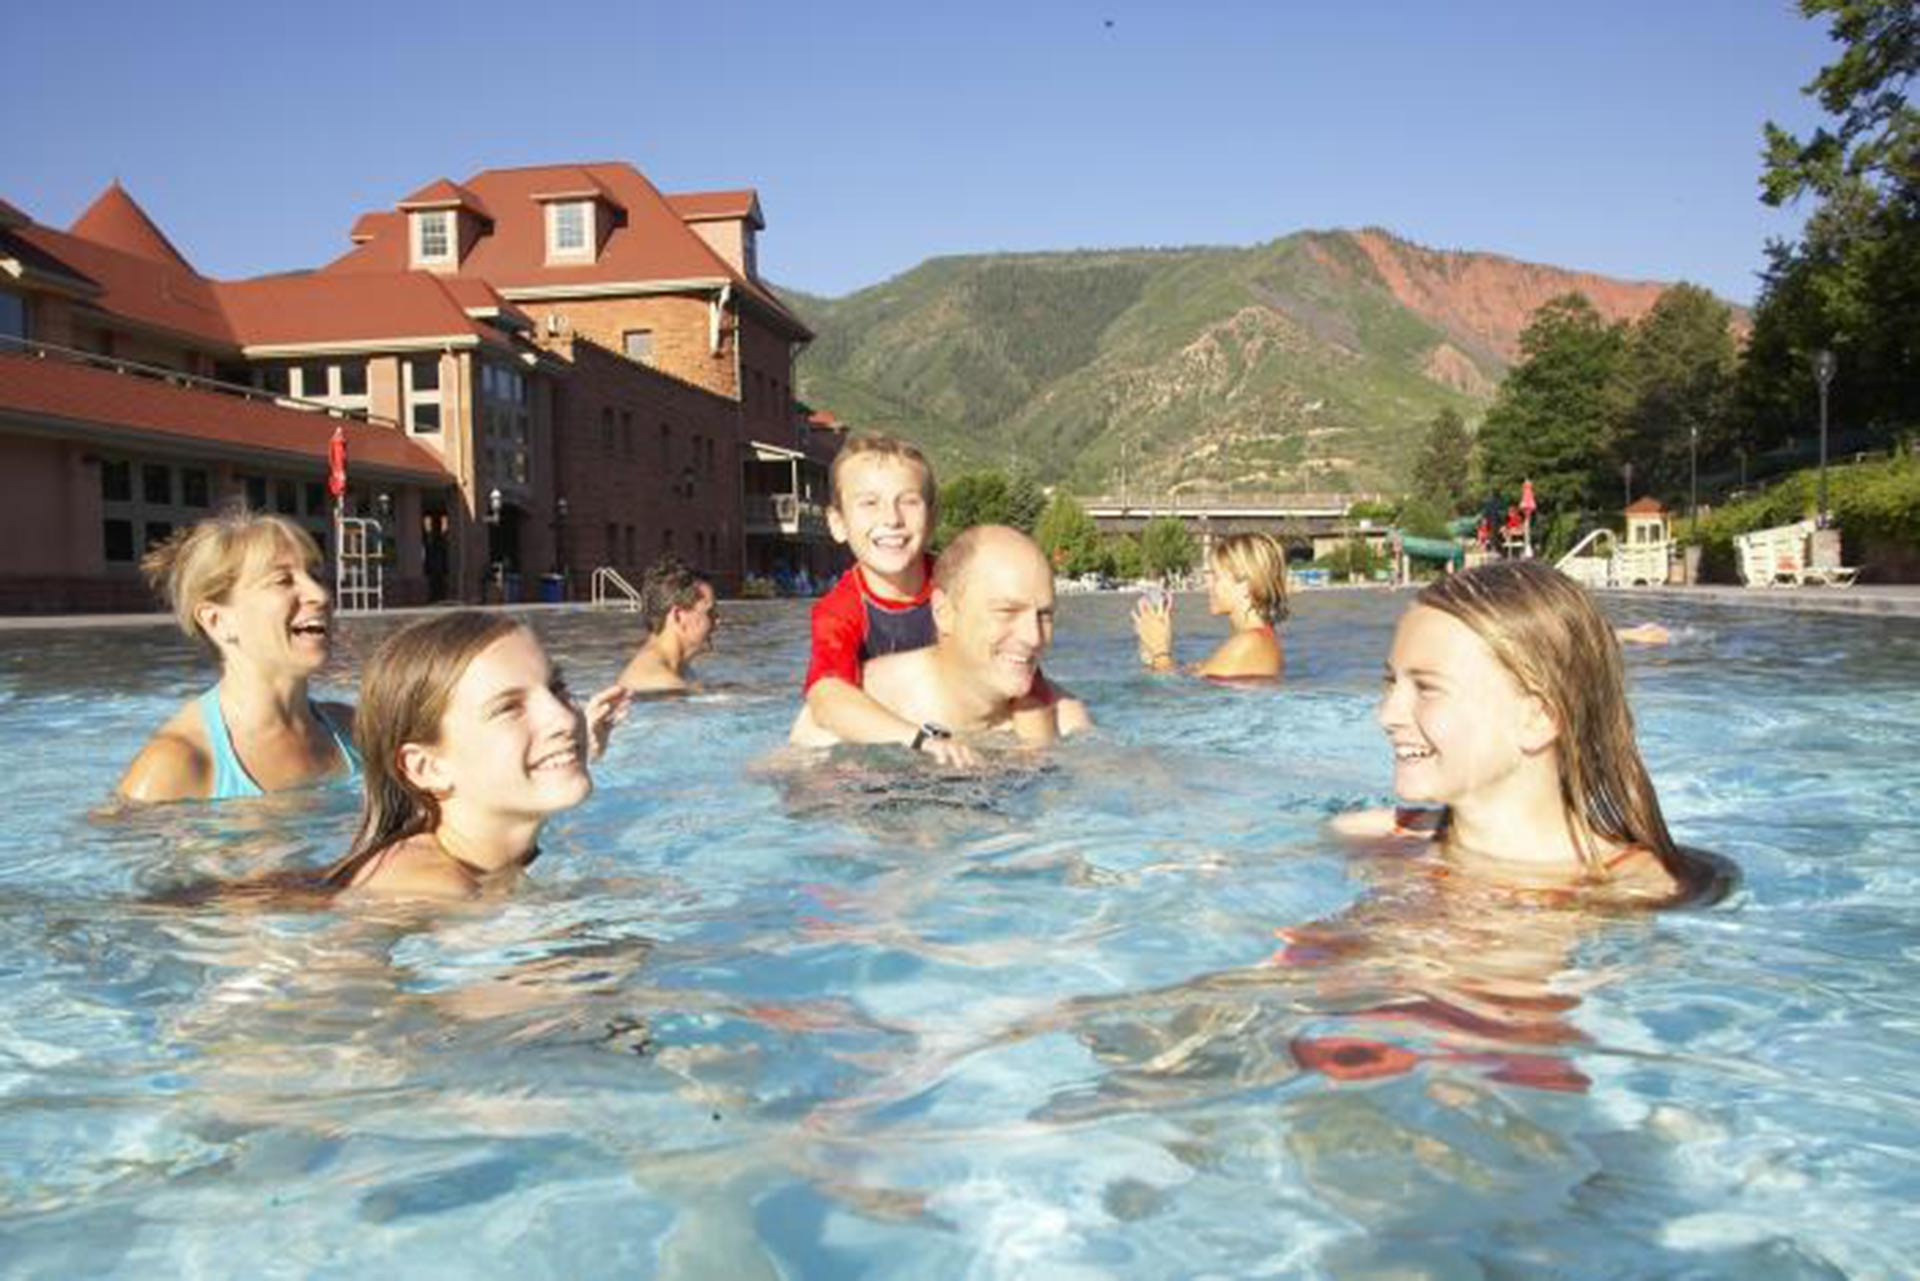 A family enjoying themselves at Glenwood Hot Springs in Glenwood Springs, Colorado.